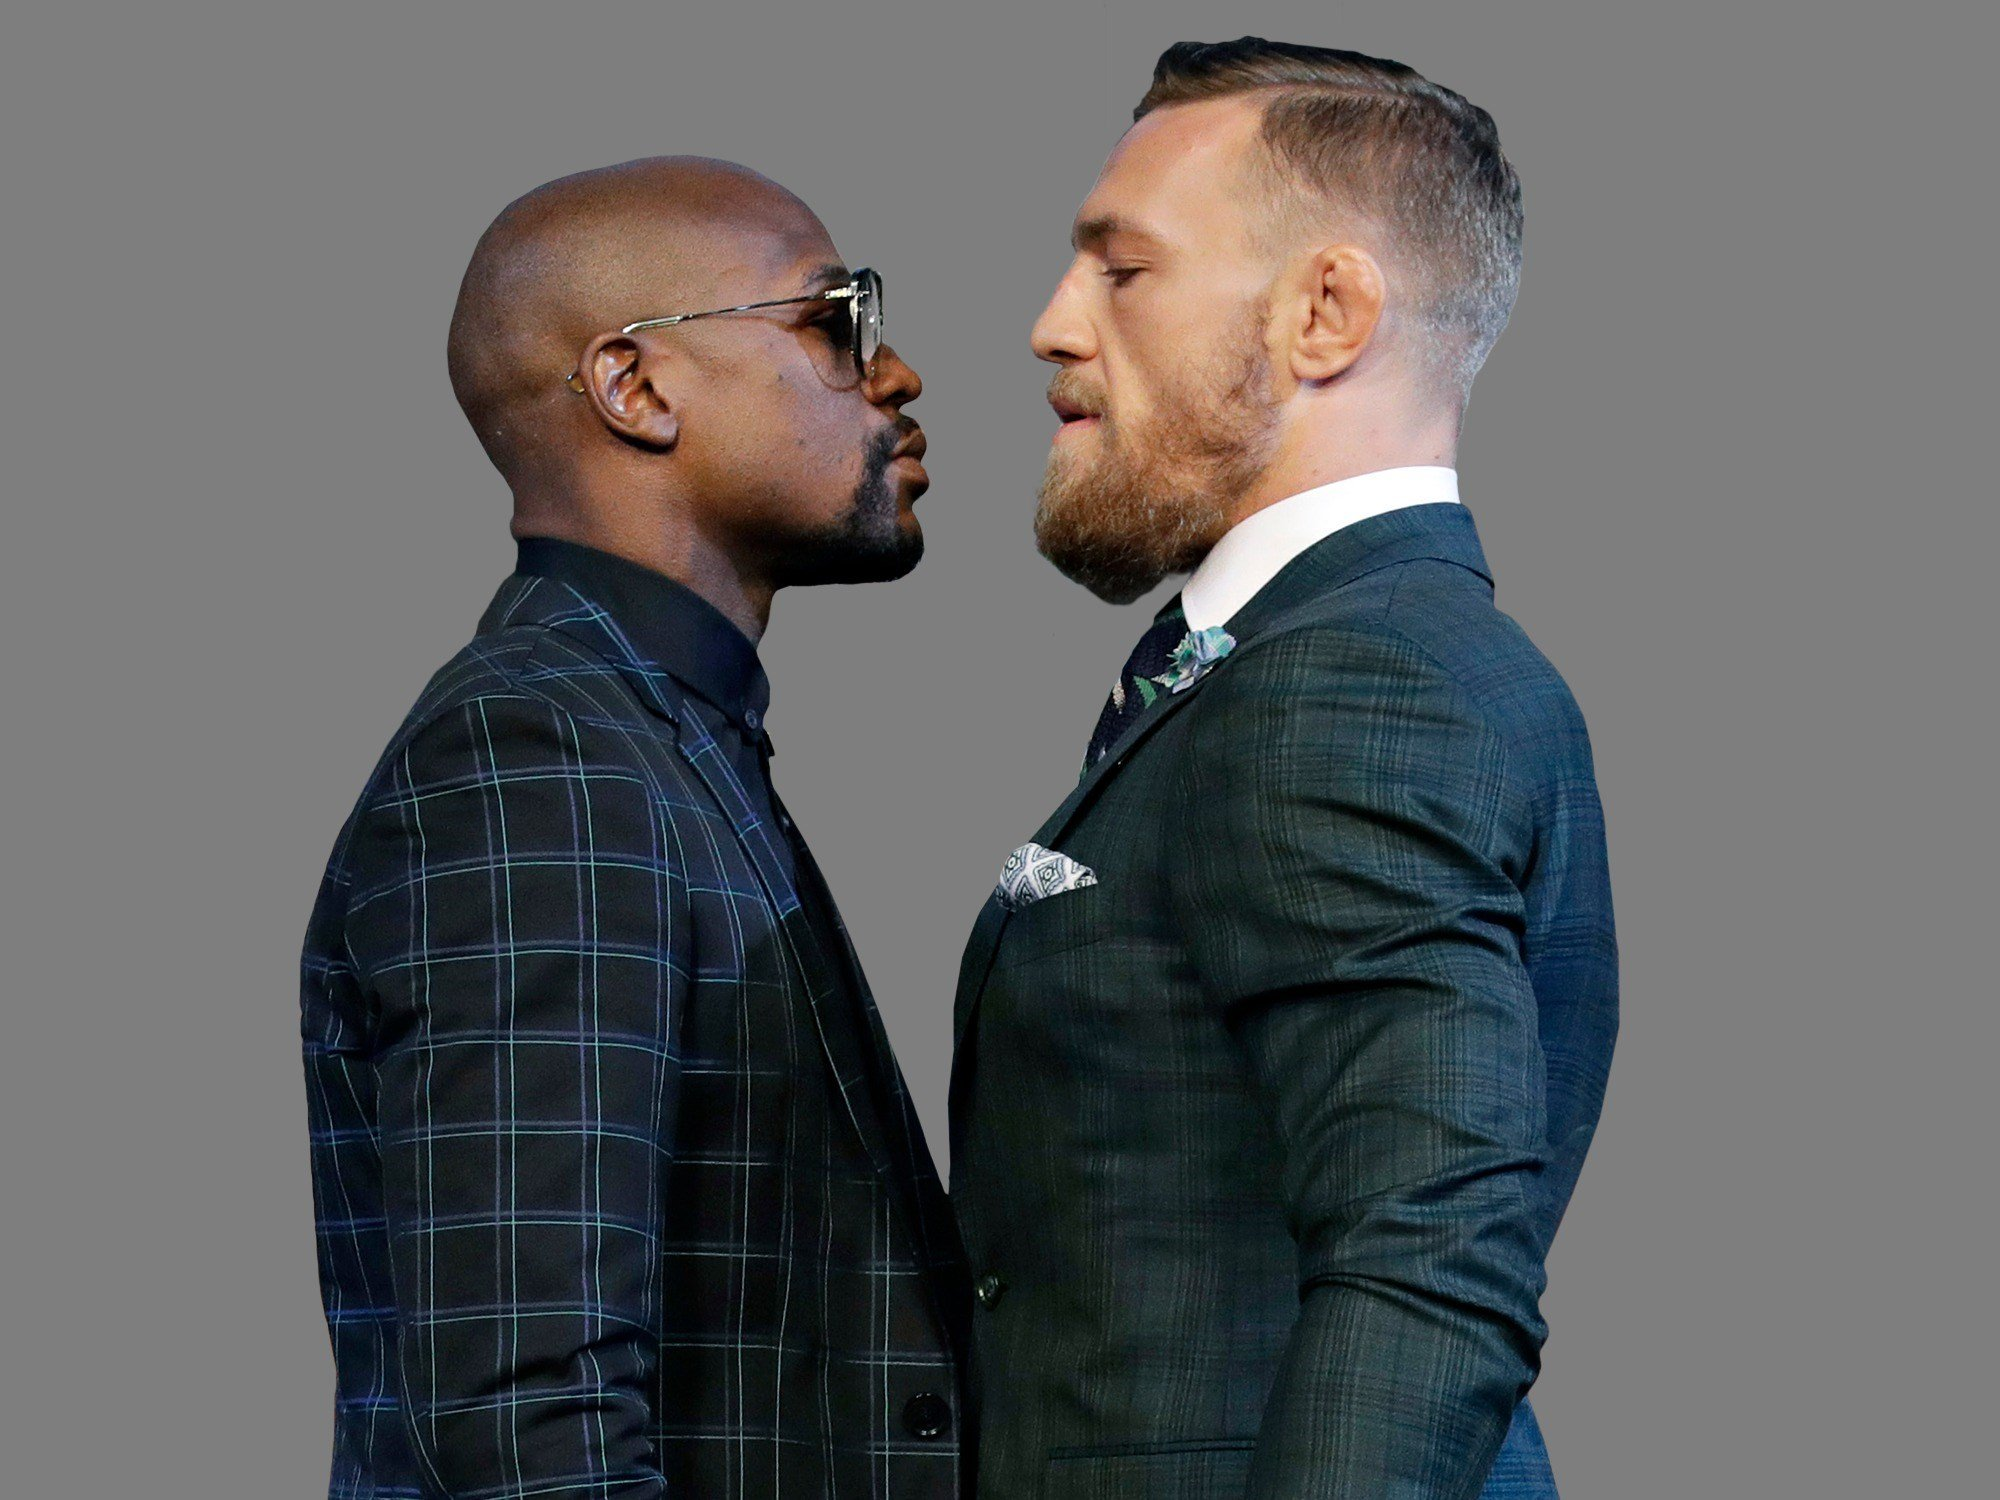 How Much Will Conor McGregor And Floyd Mayweather Make For Their Fight?